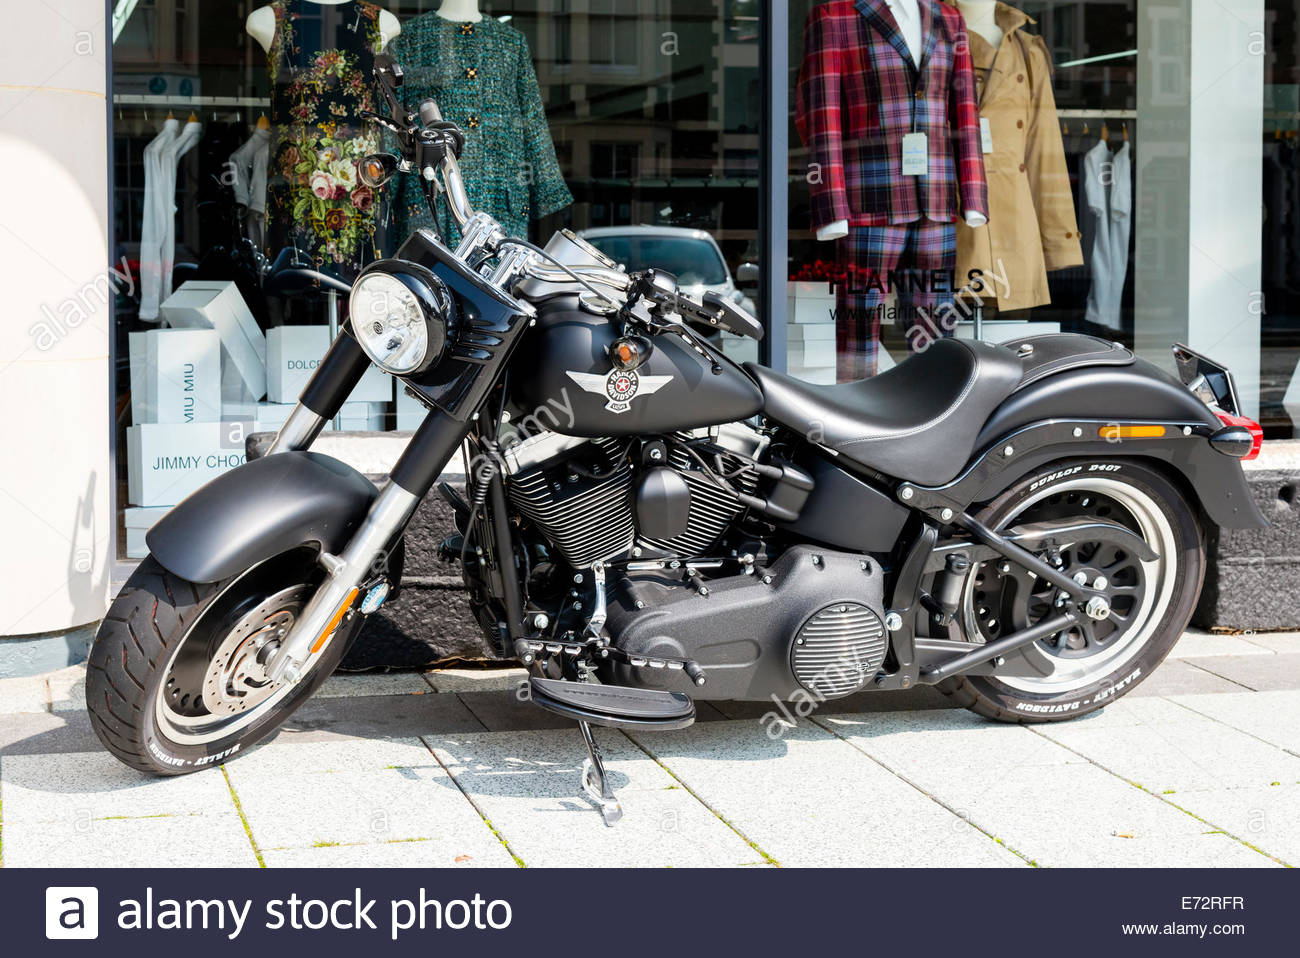 Harley Davidson motorcycle parked outside a shop, UK. - Stock Image